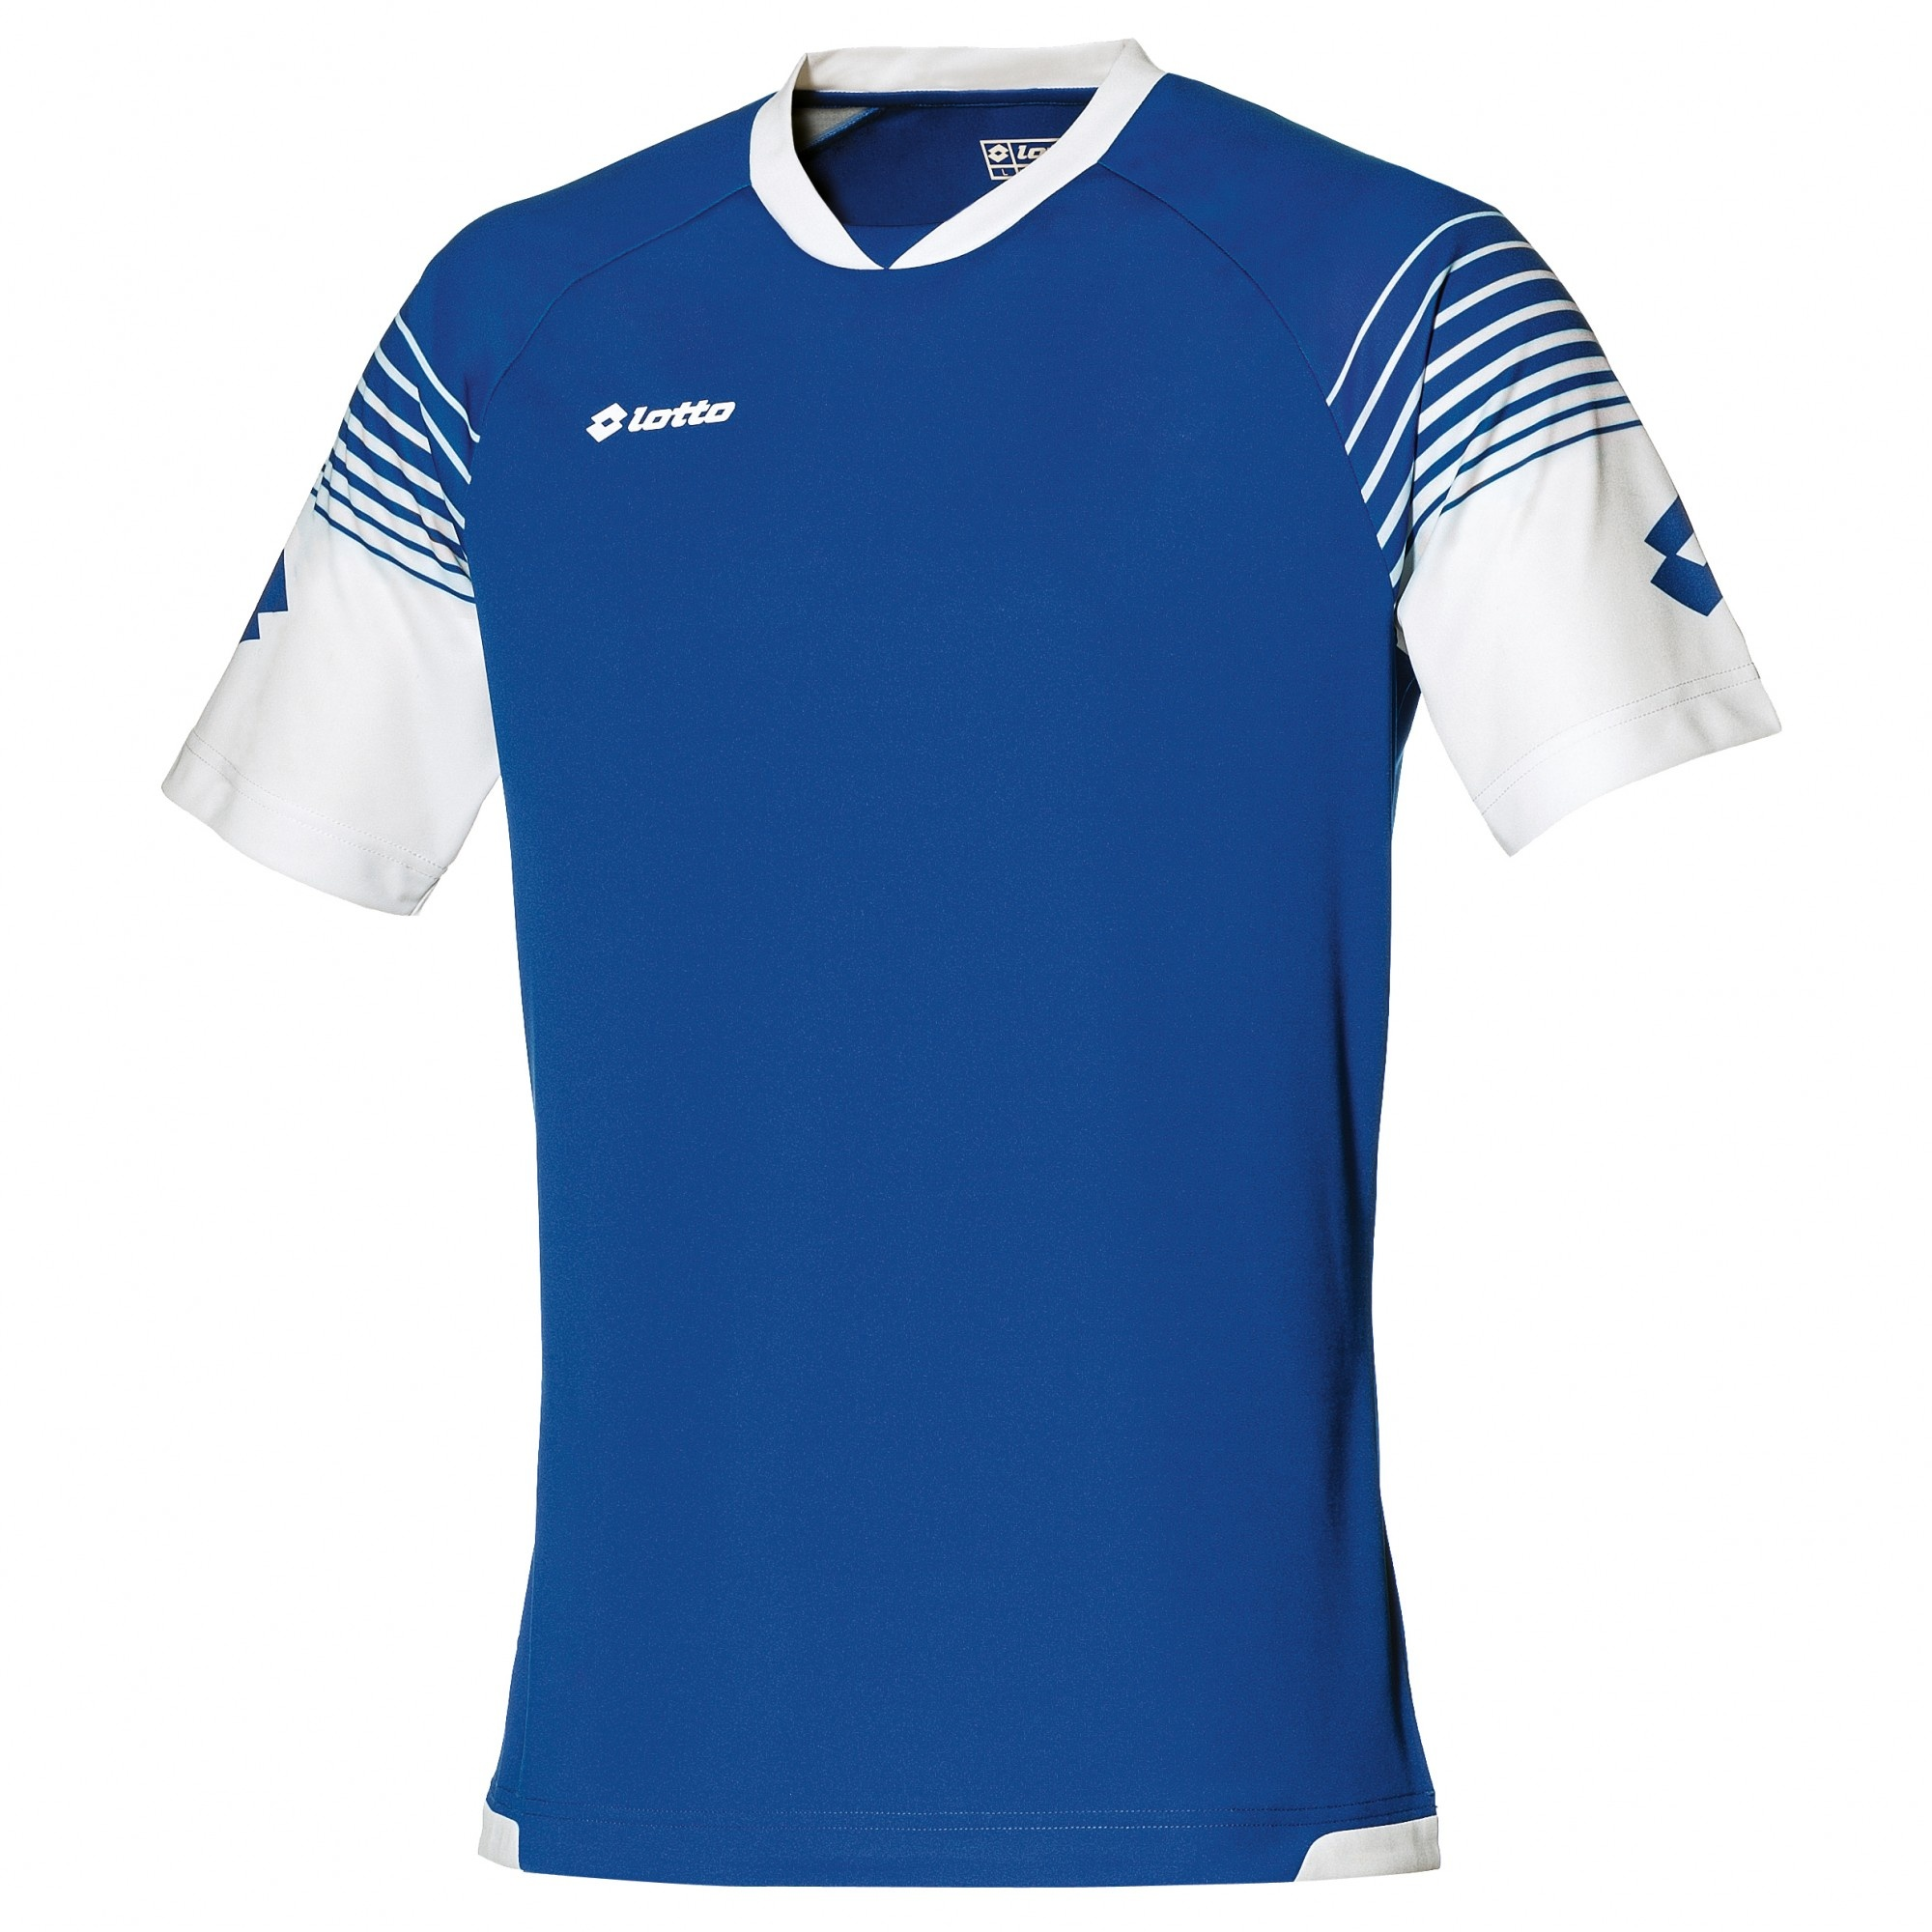 Lotto mens football jersey omega sports t shirt ebay for What is a sport shirt